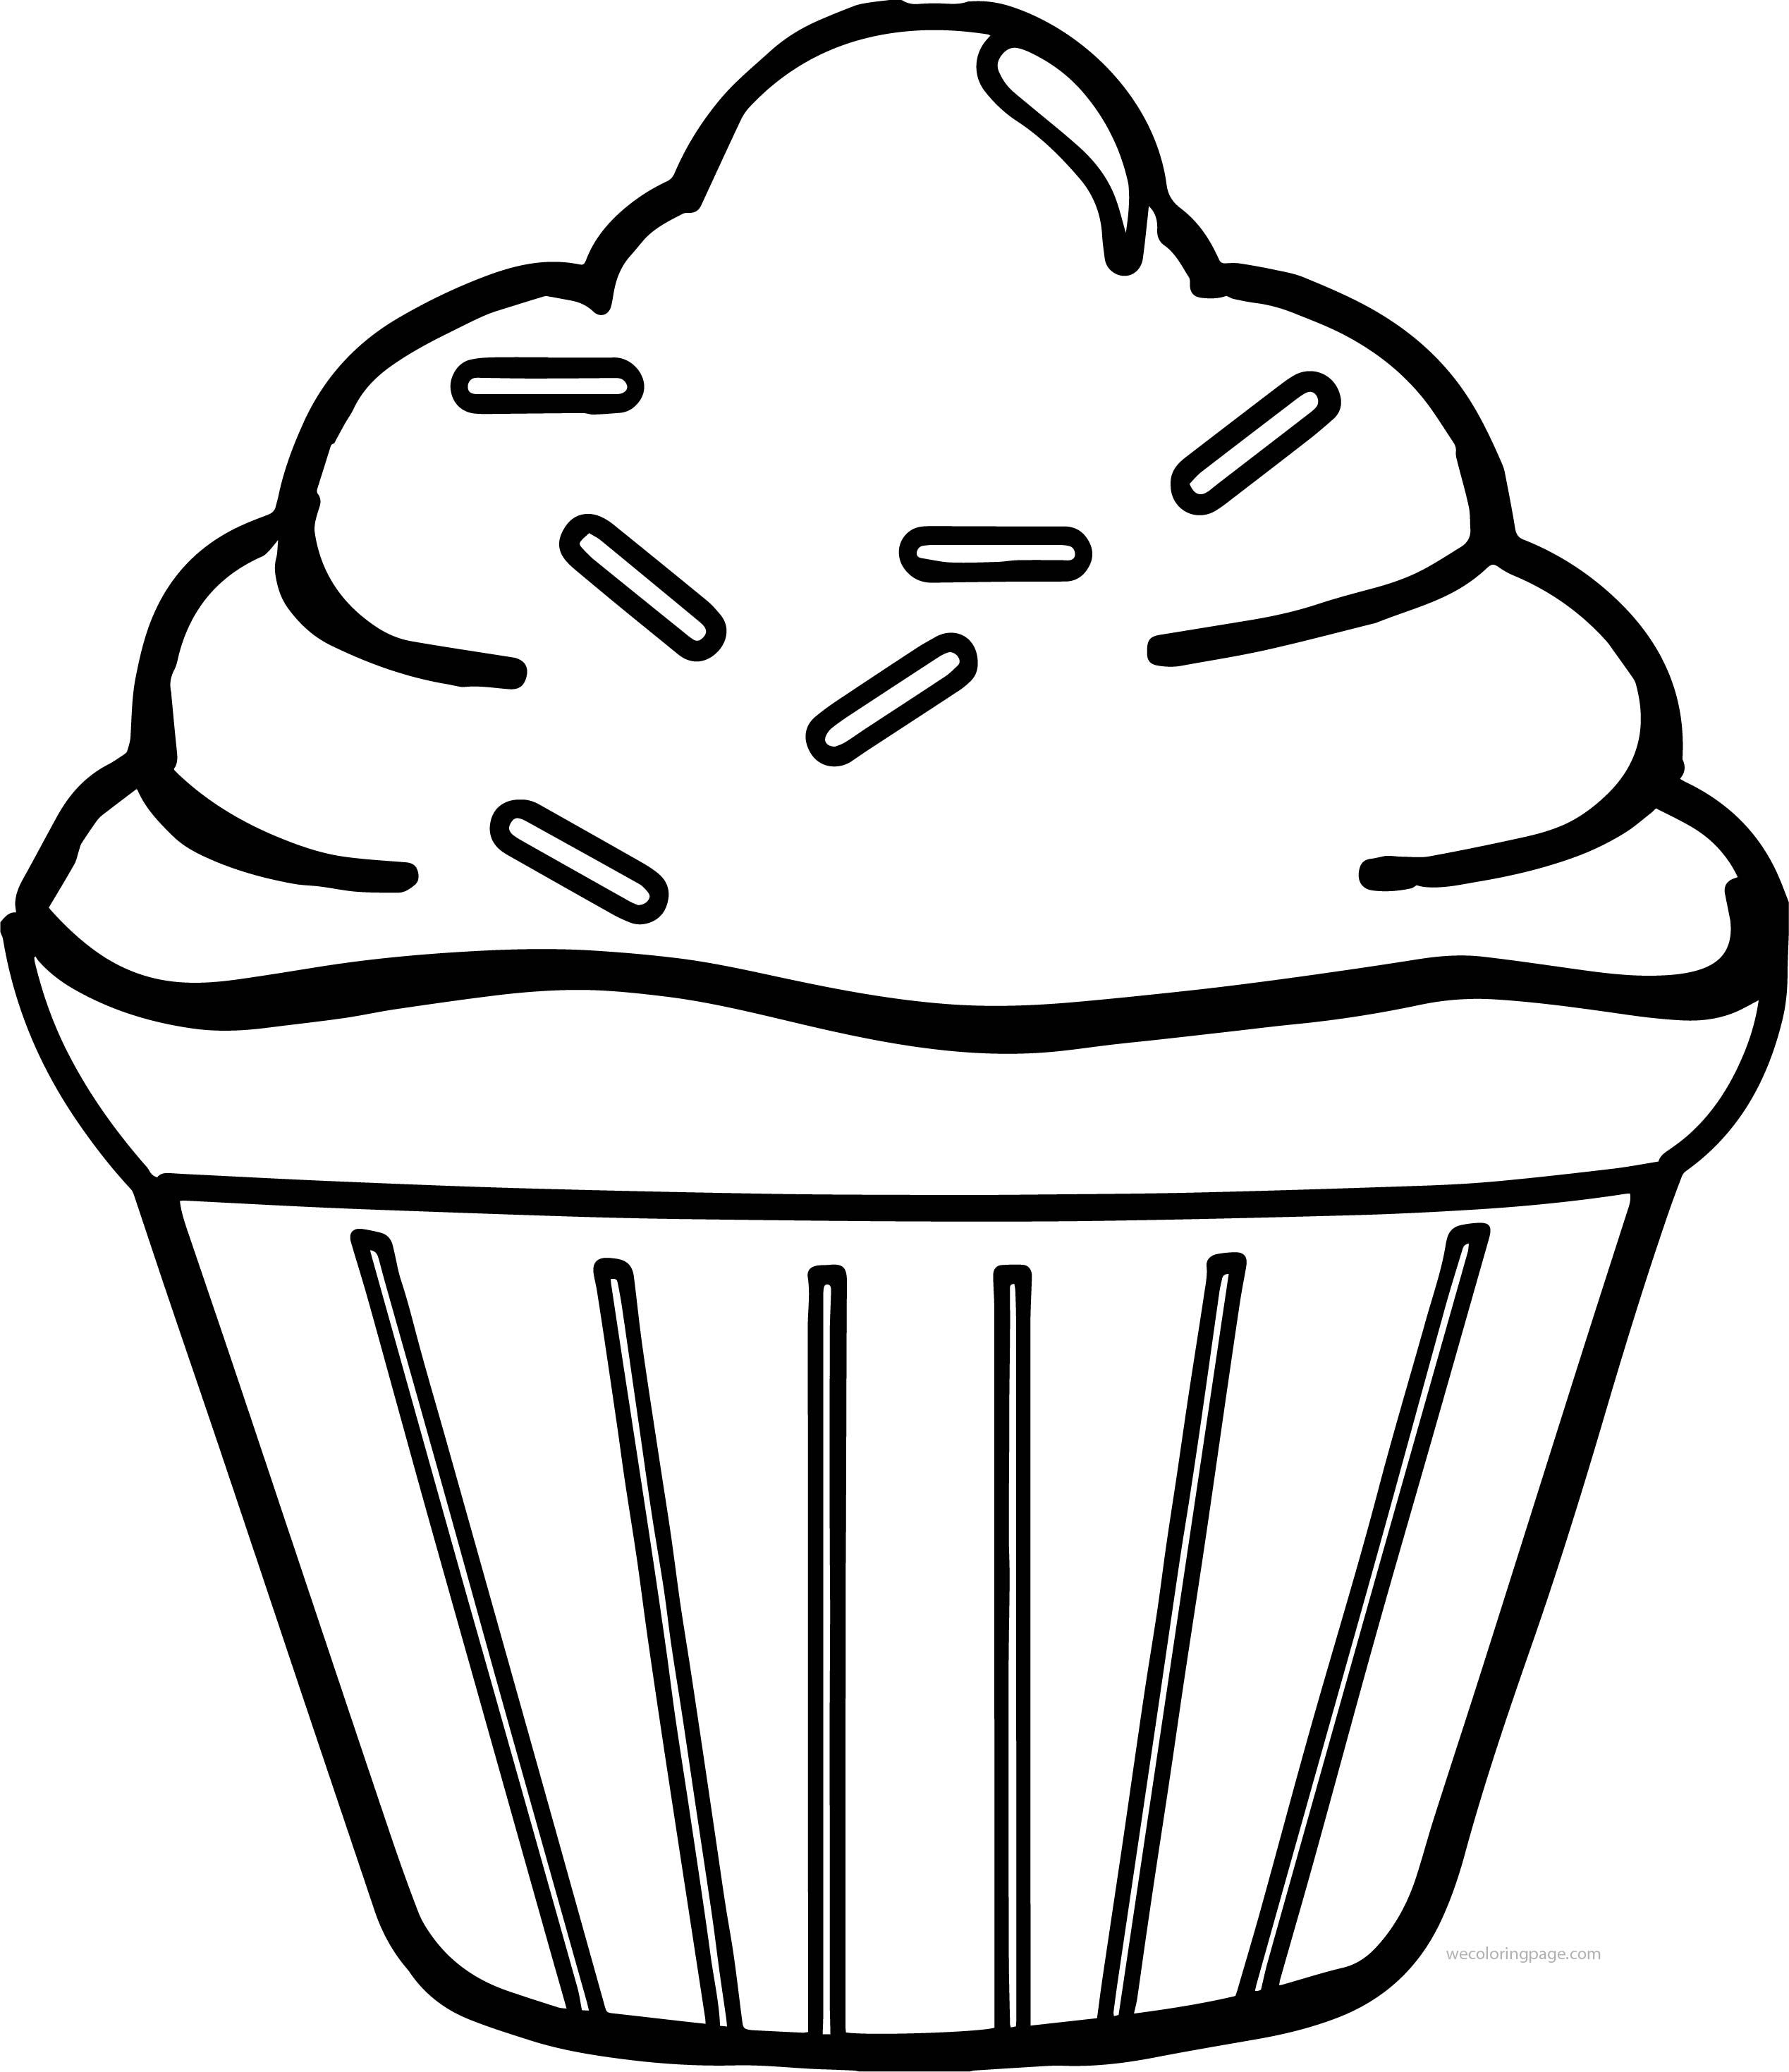 Cool Simple Cupcake Coloring Page Cupcake Coloring Pages Free Coloring Pages Coloring Pages